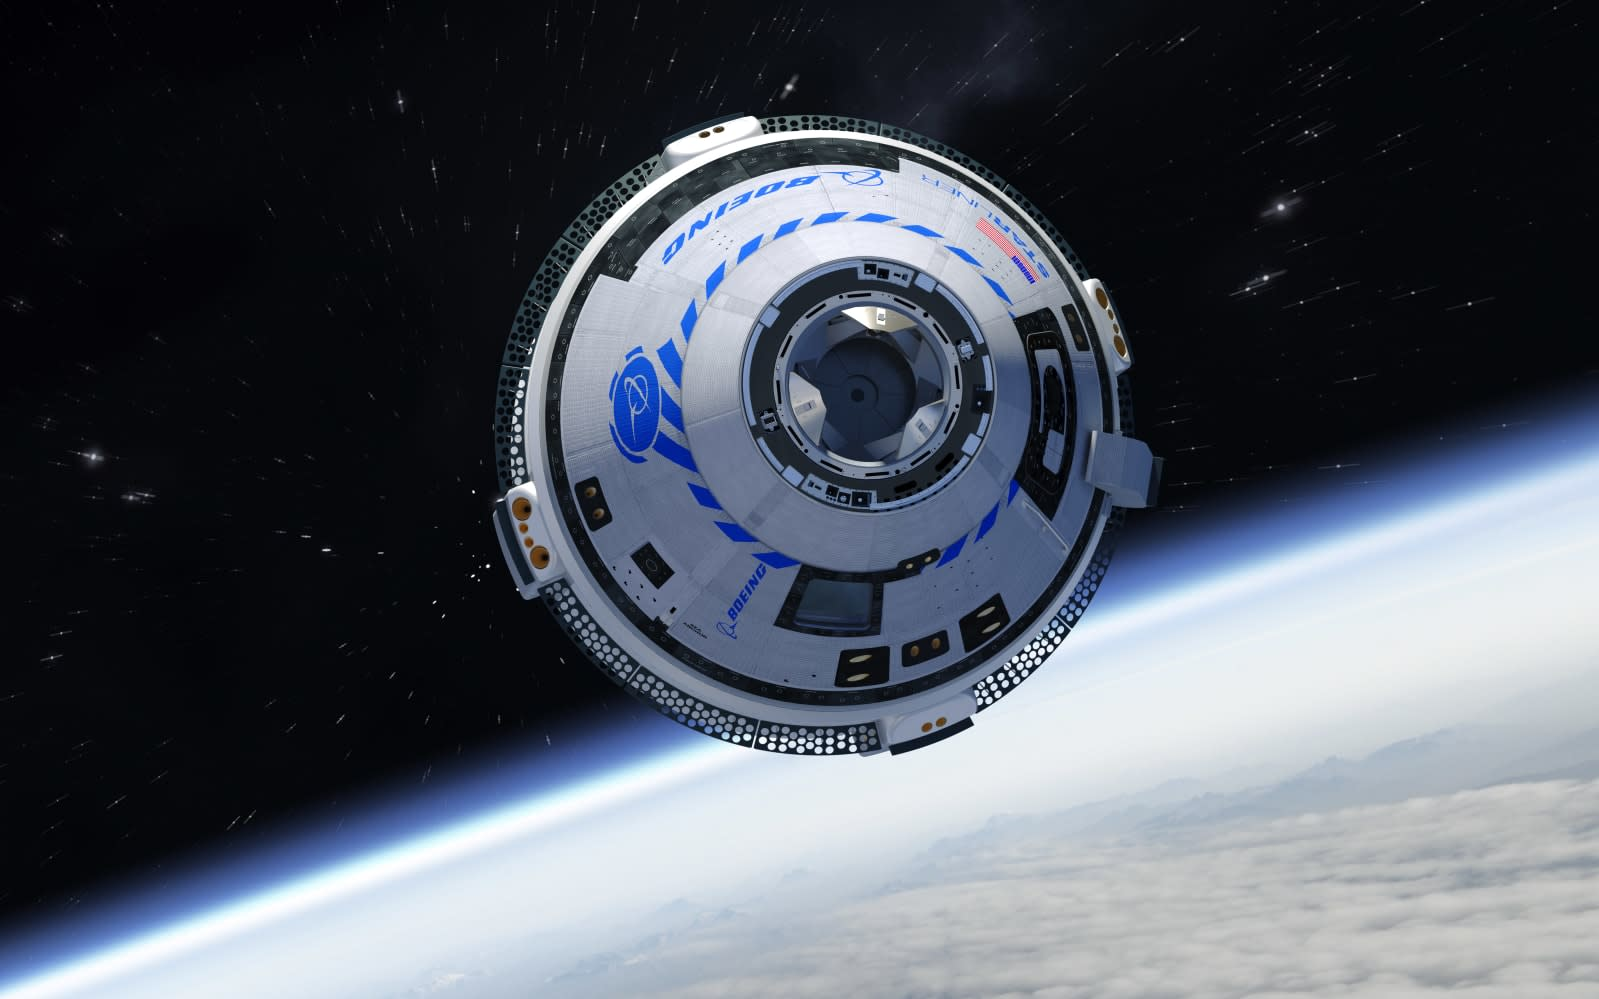 Boeing's Starliner will not reach the ISS in its first test flight ...